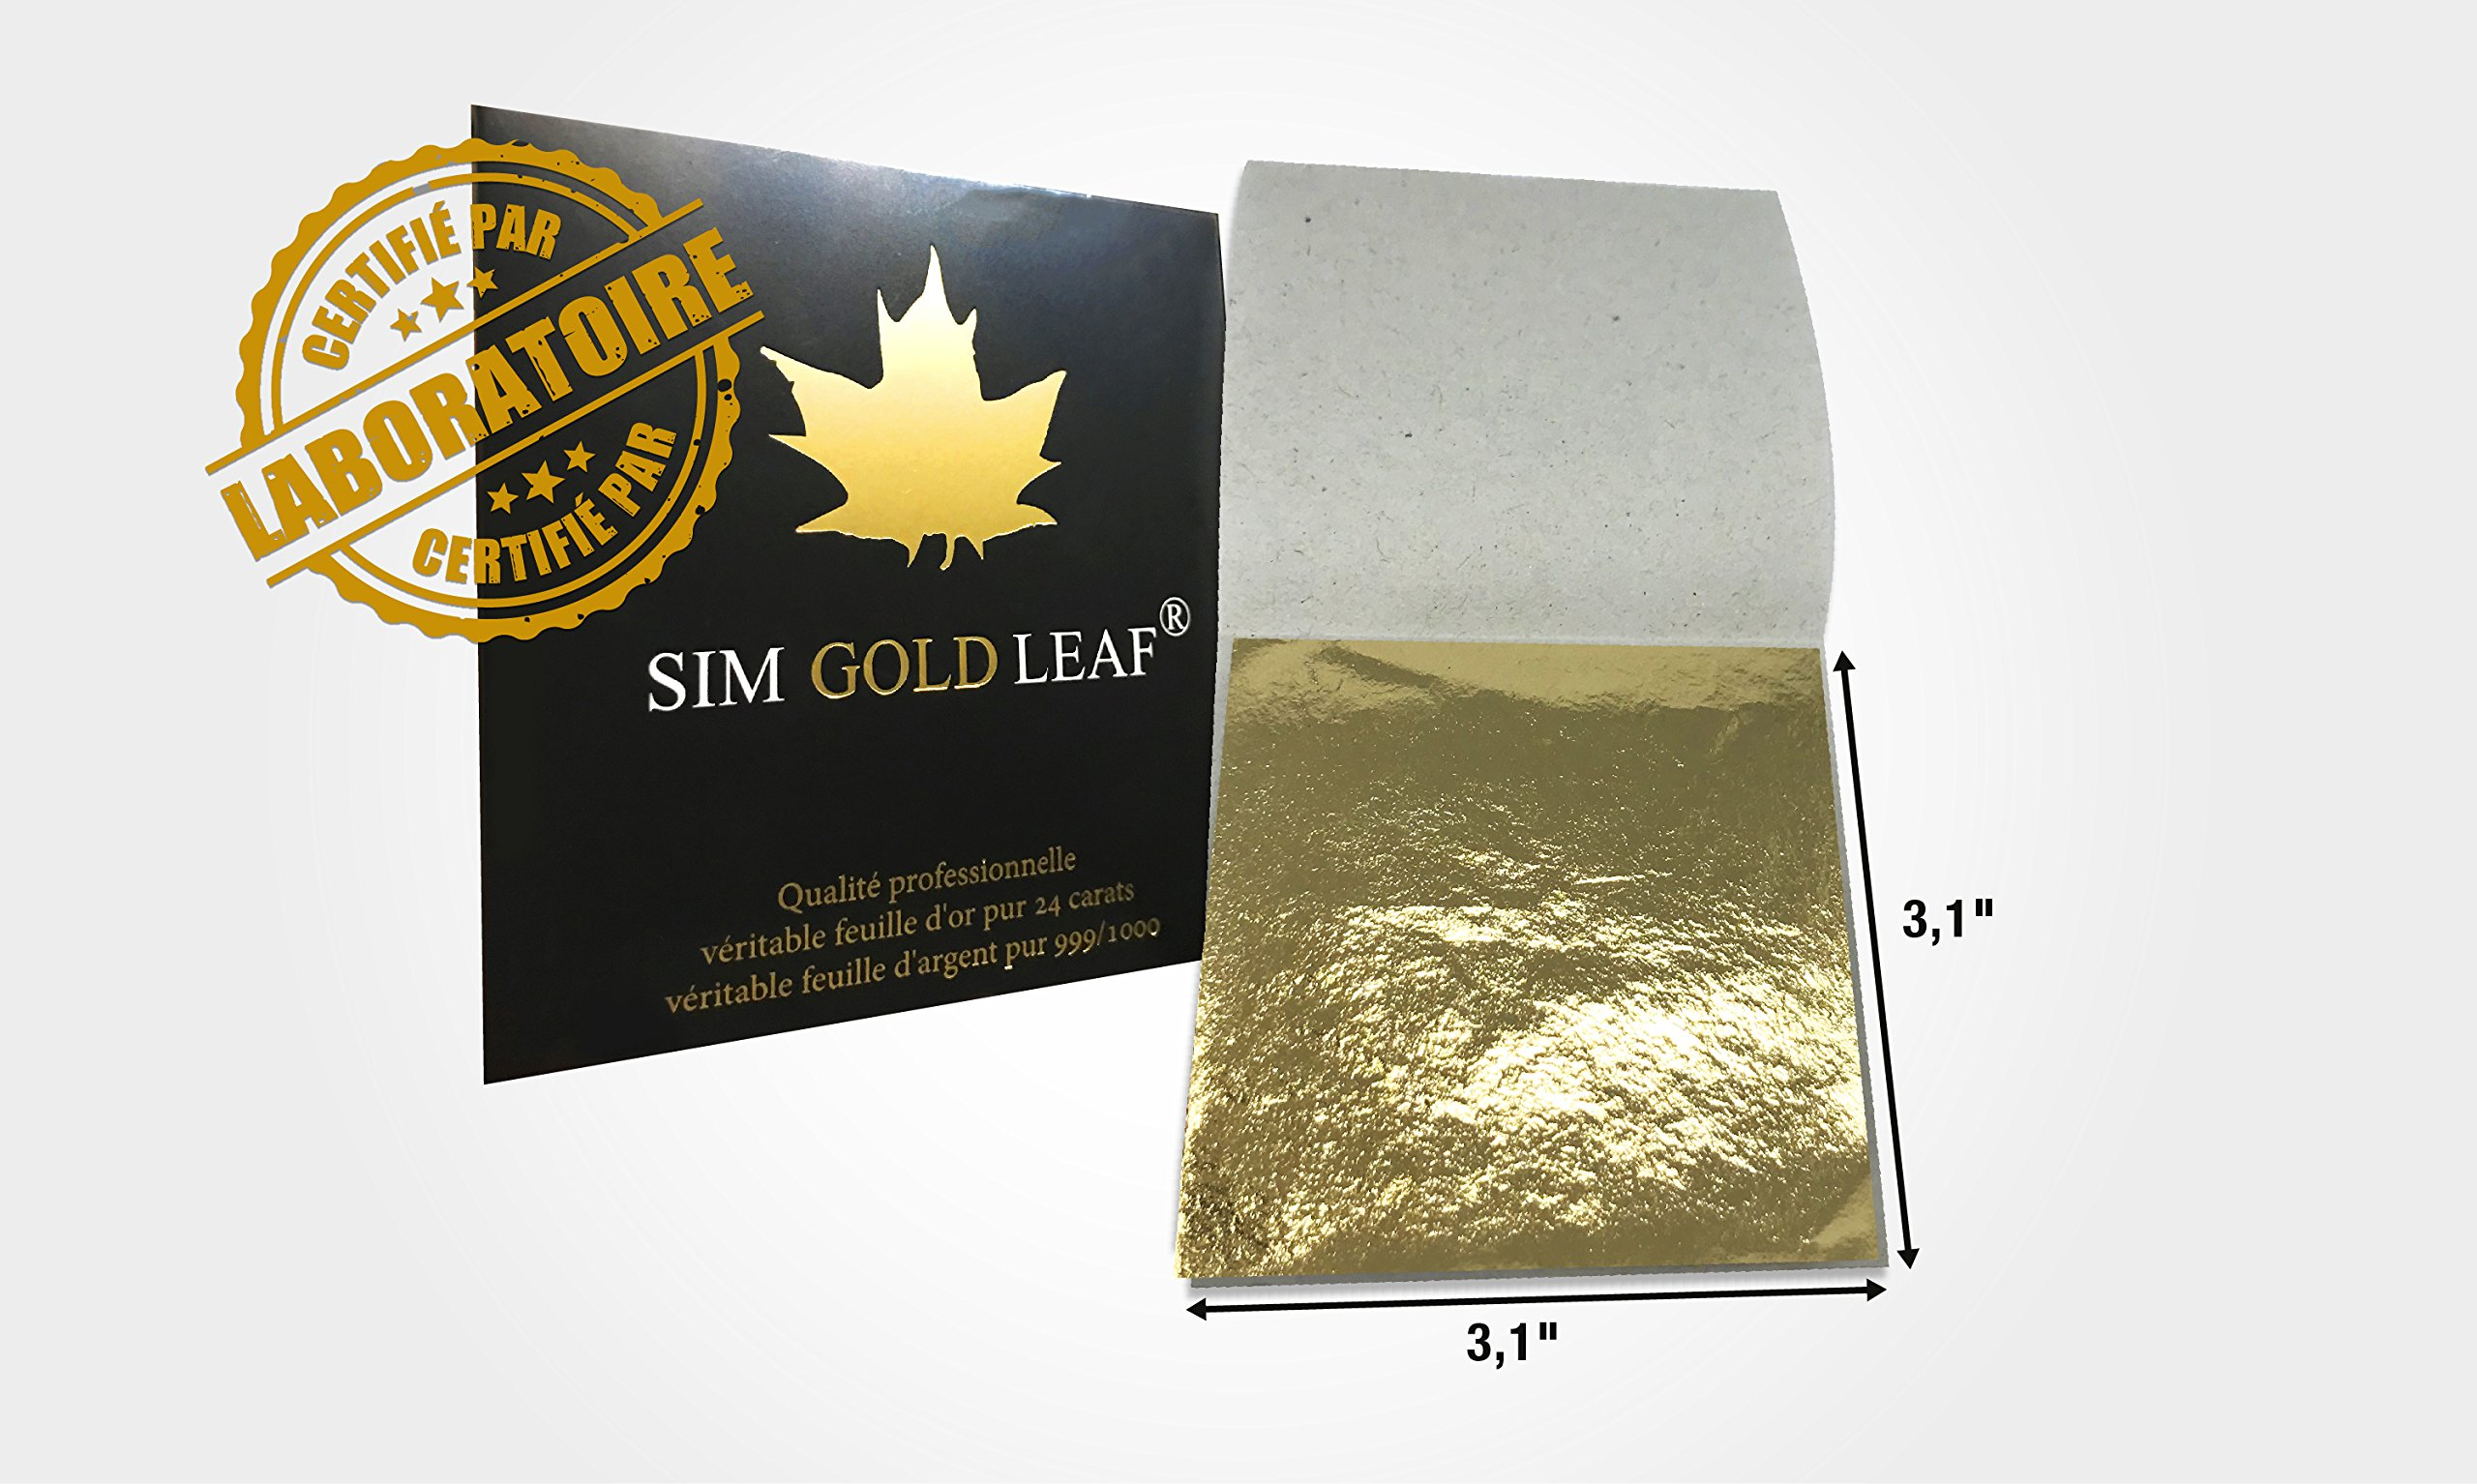 sim gold leaf 10 Sheets, 3-1/8 inches Booklet (Loose Leaf) Professional Quality Genuine edible Gold Leaf Sheets, 24k